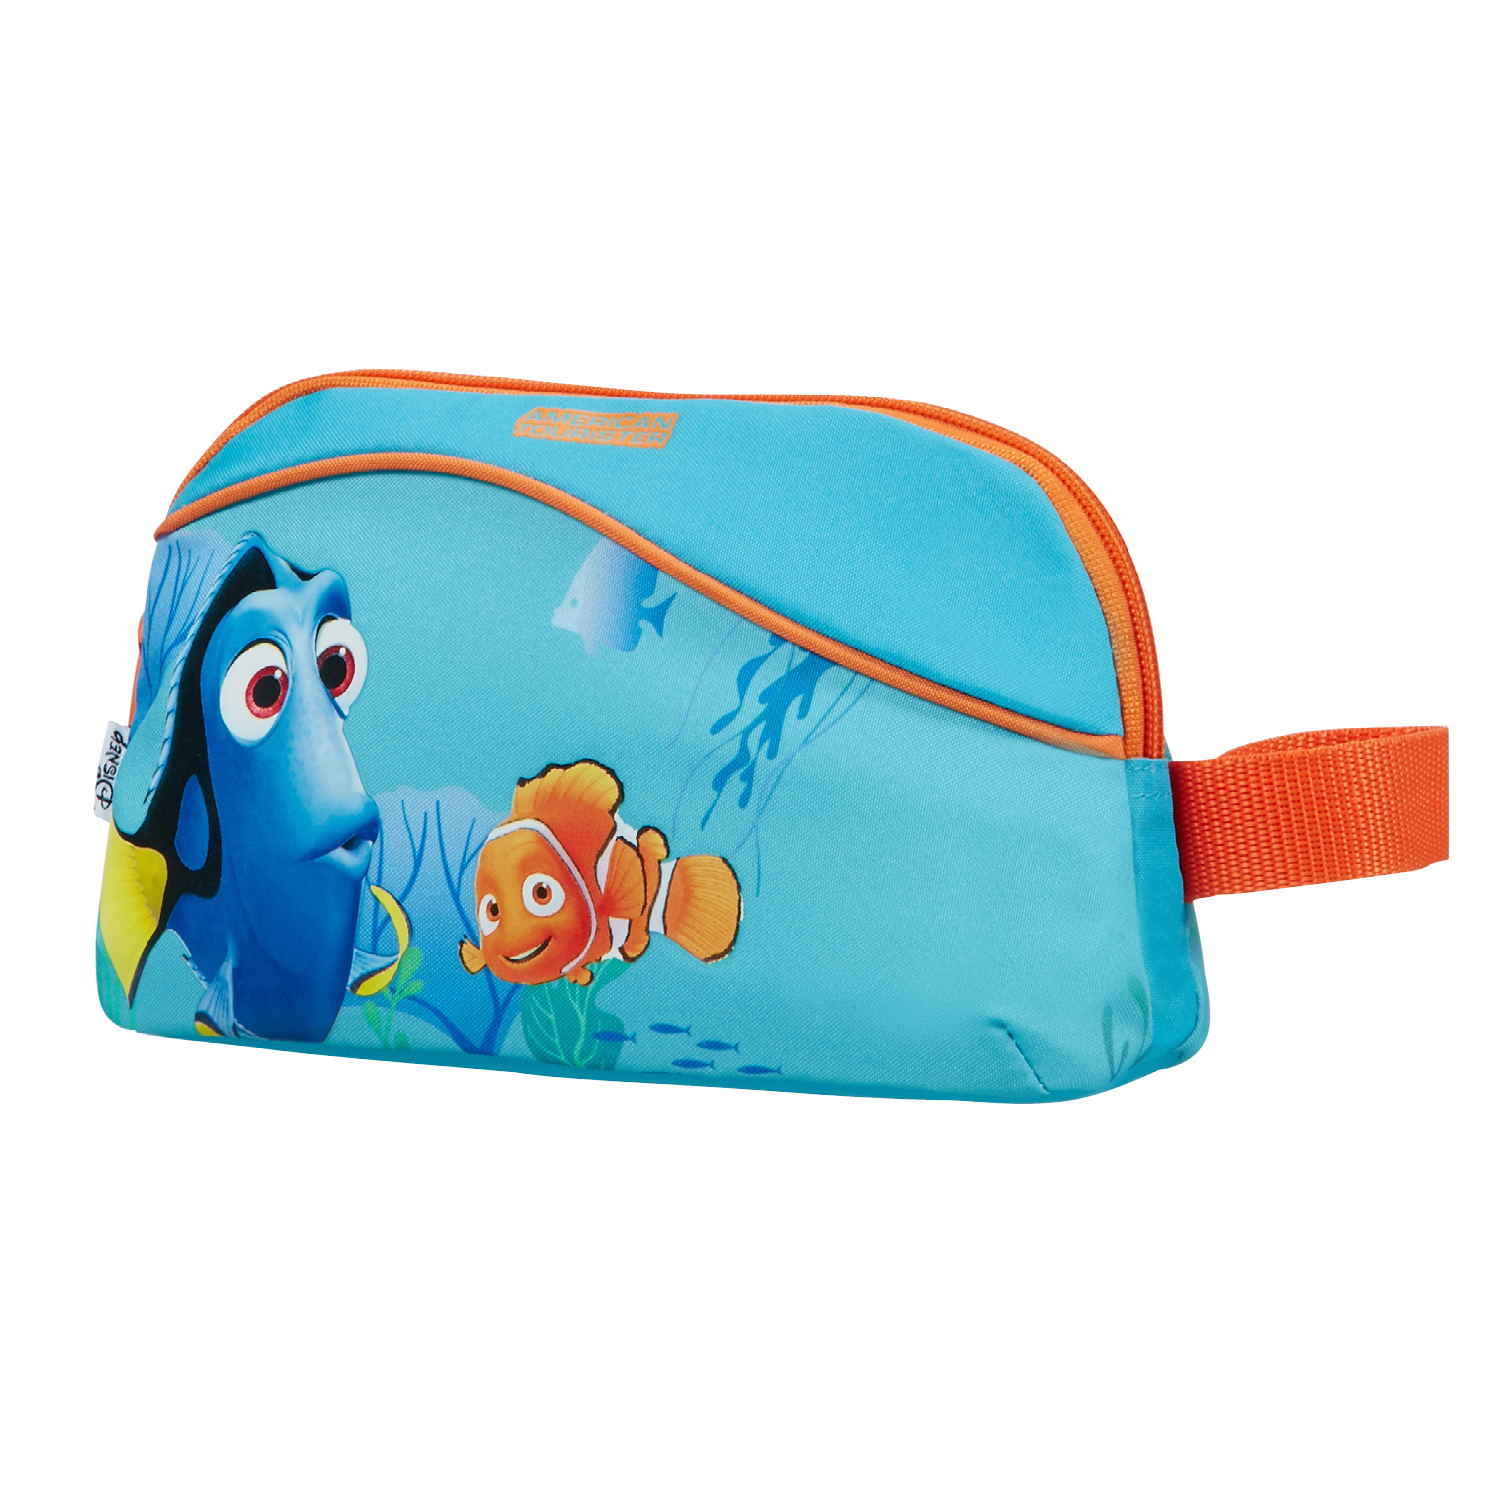 AMERICAN TOURISTER - Παιδικό νεσεσέρ Disney by American Tourister μπλε